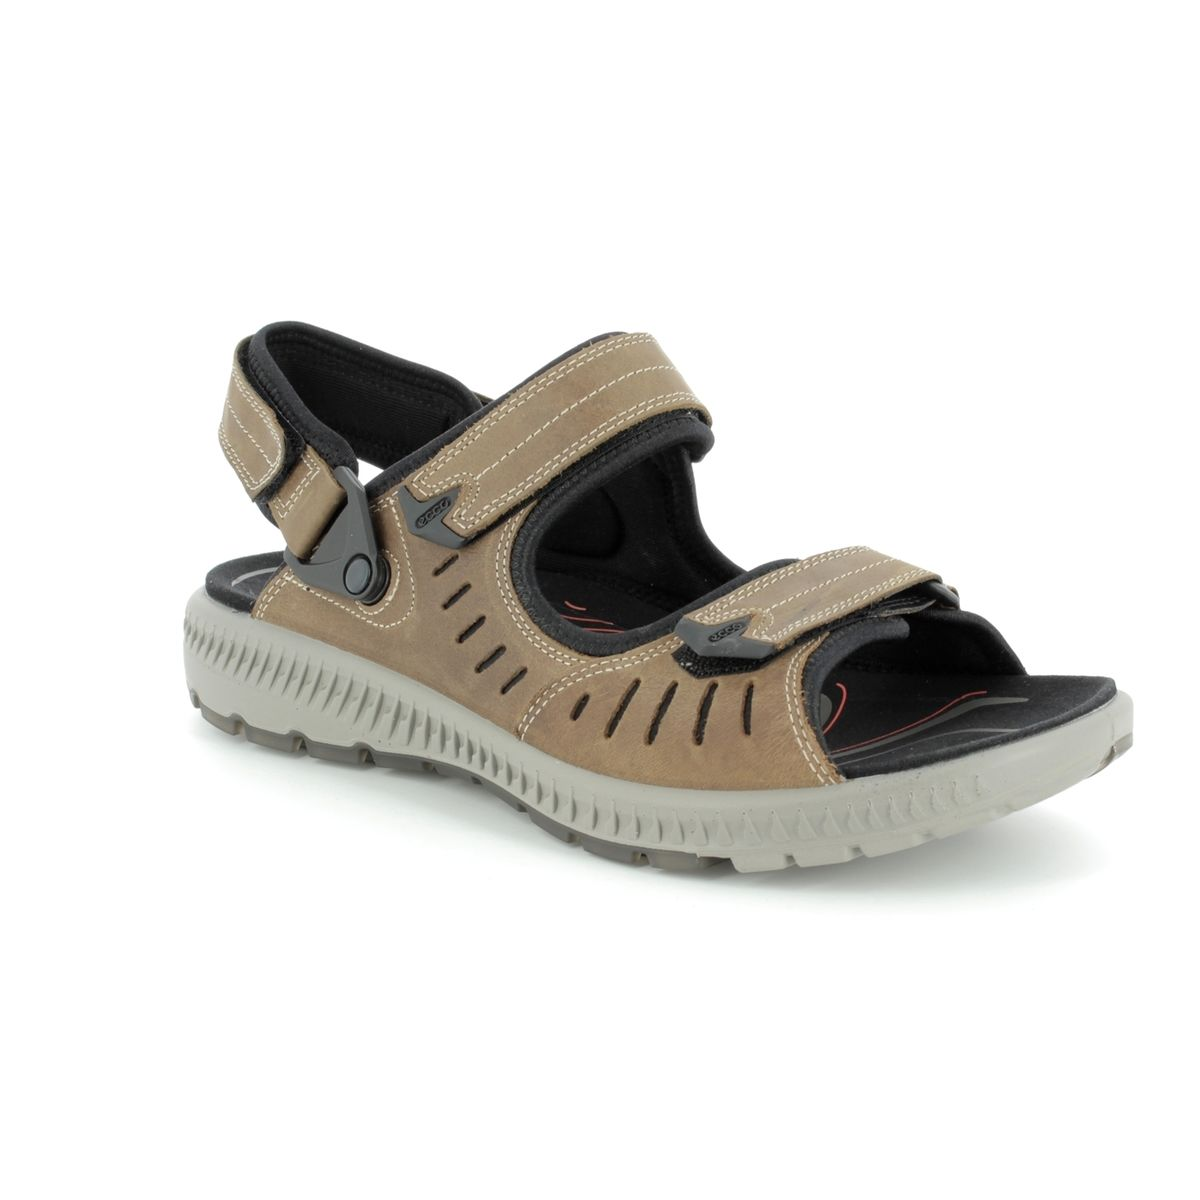 3a862ac36d 822704/02114 Terra Sandal at Begg Shoes & Bags